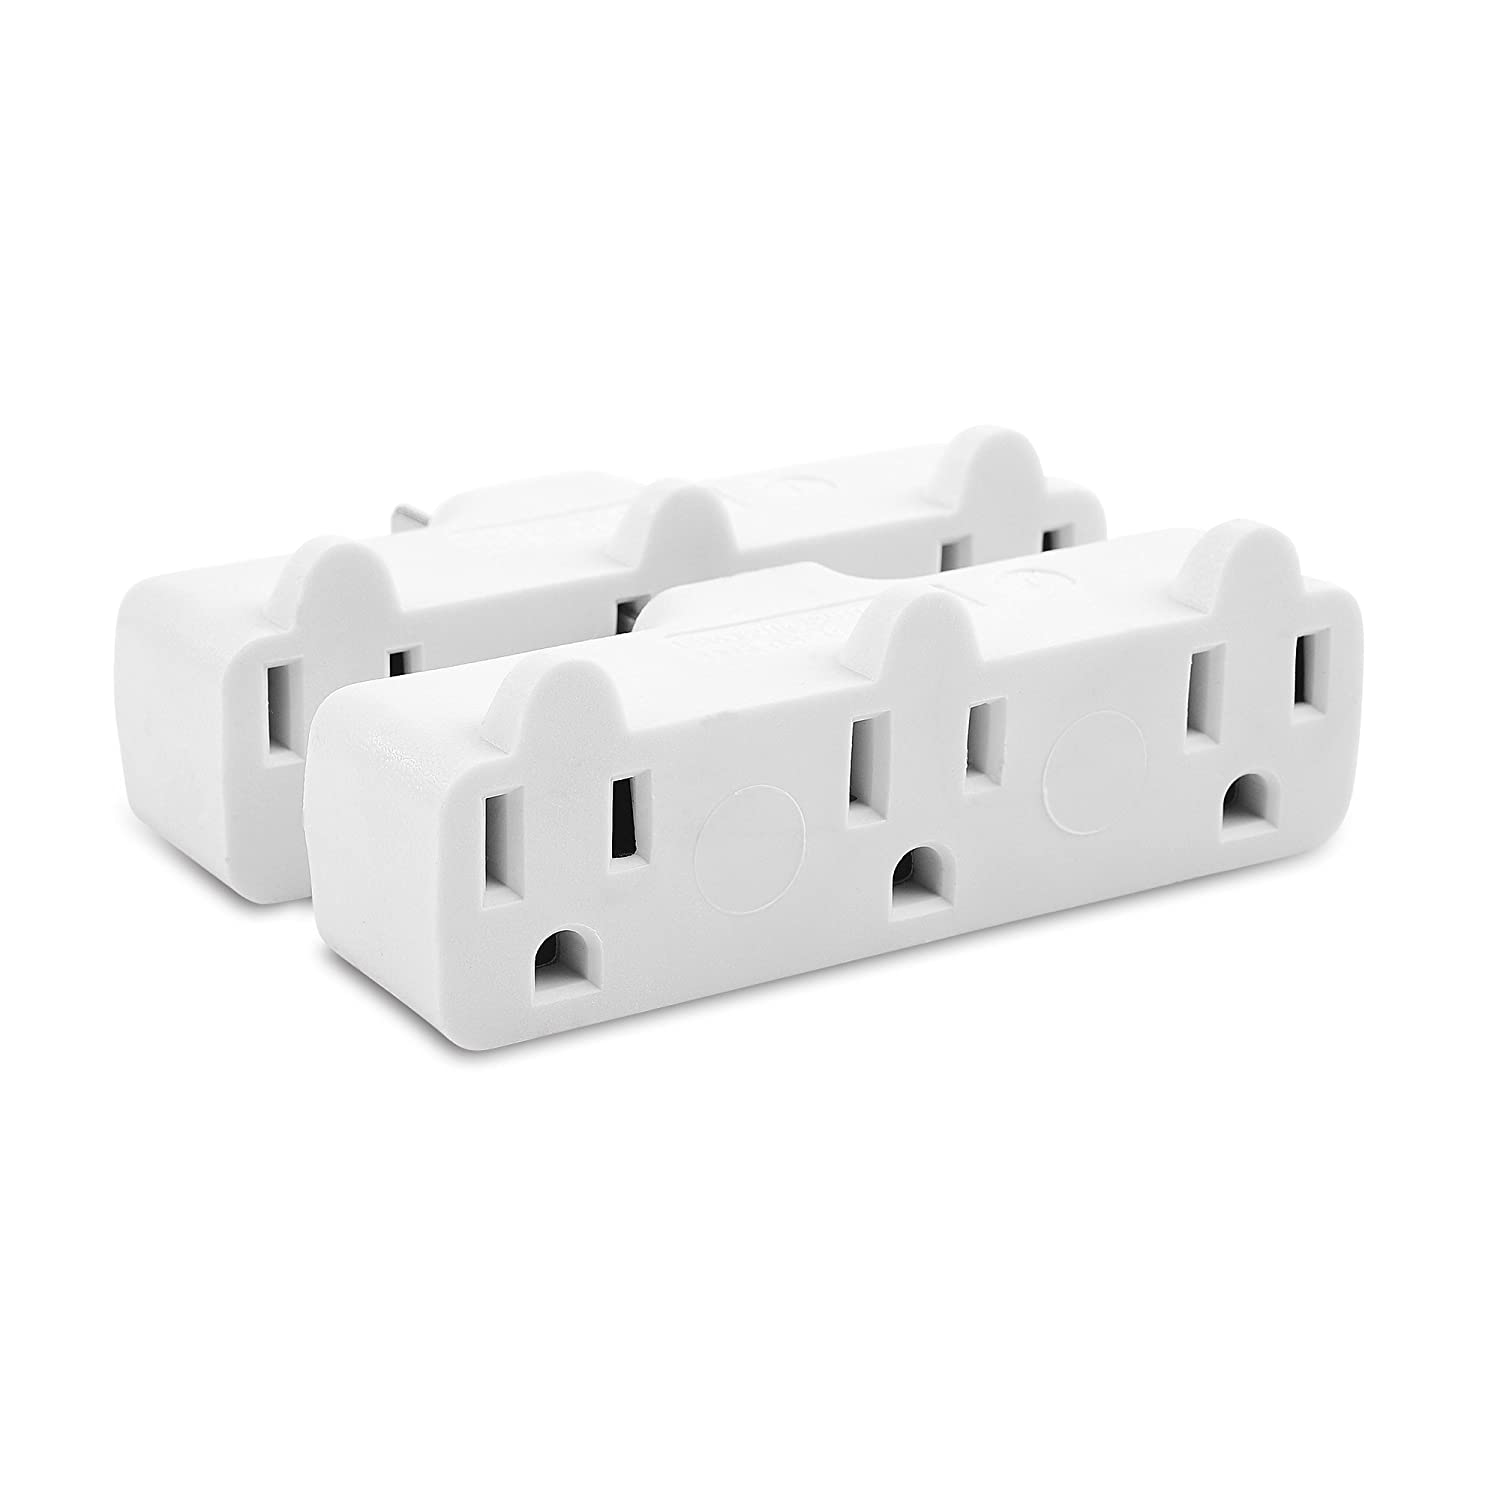 Cable Matters 400018x2 GT300RC1-2 2-Pack 3-Outlet Grounded Wall Tap Strip